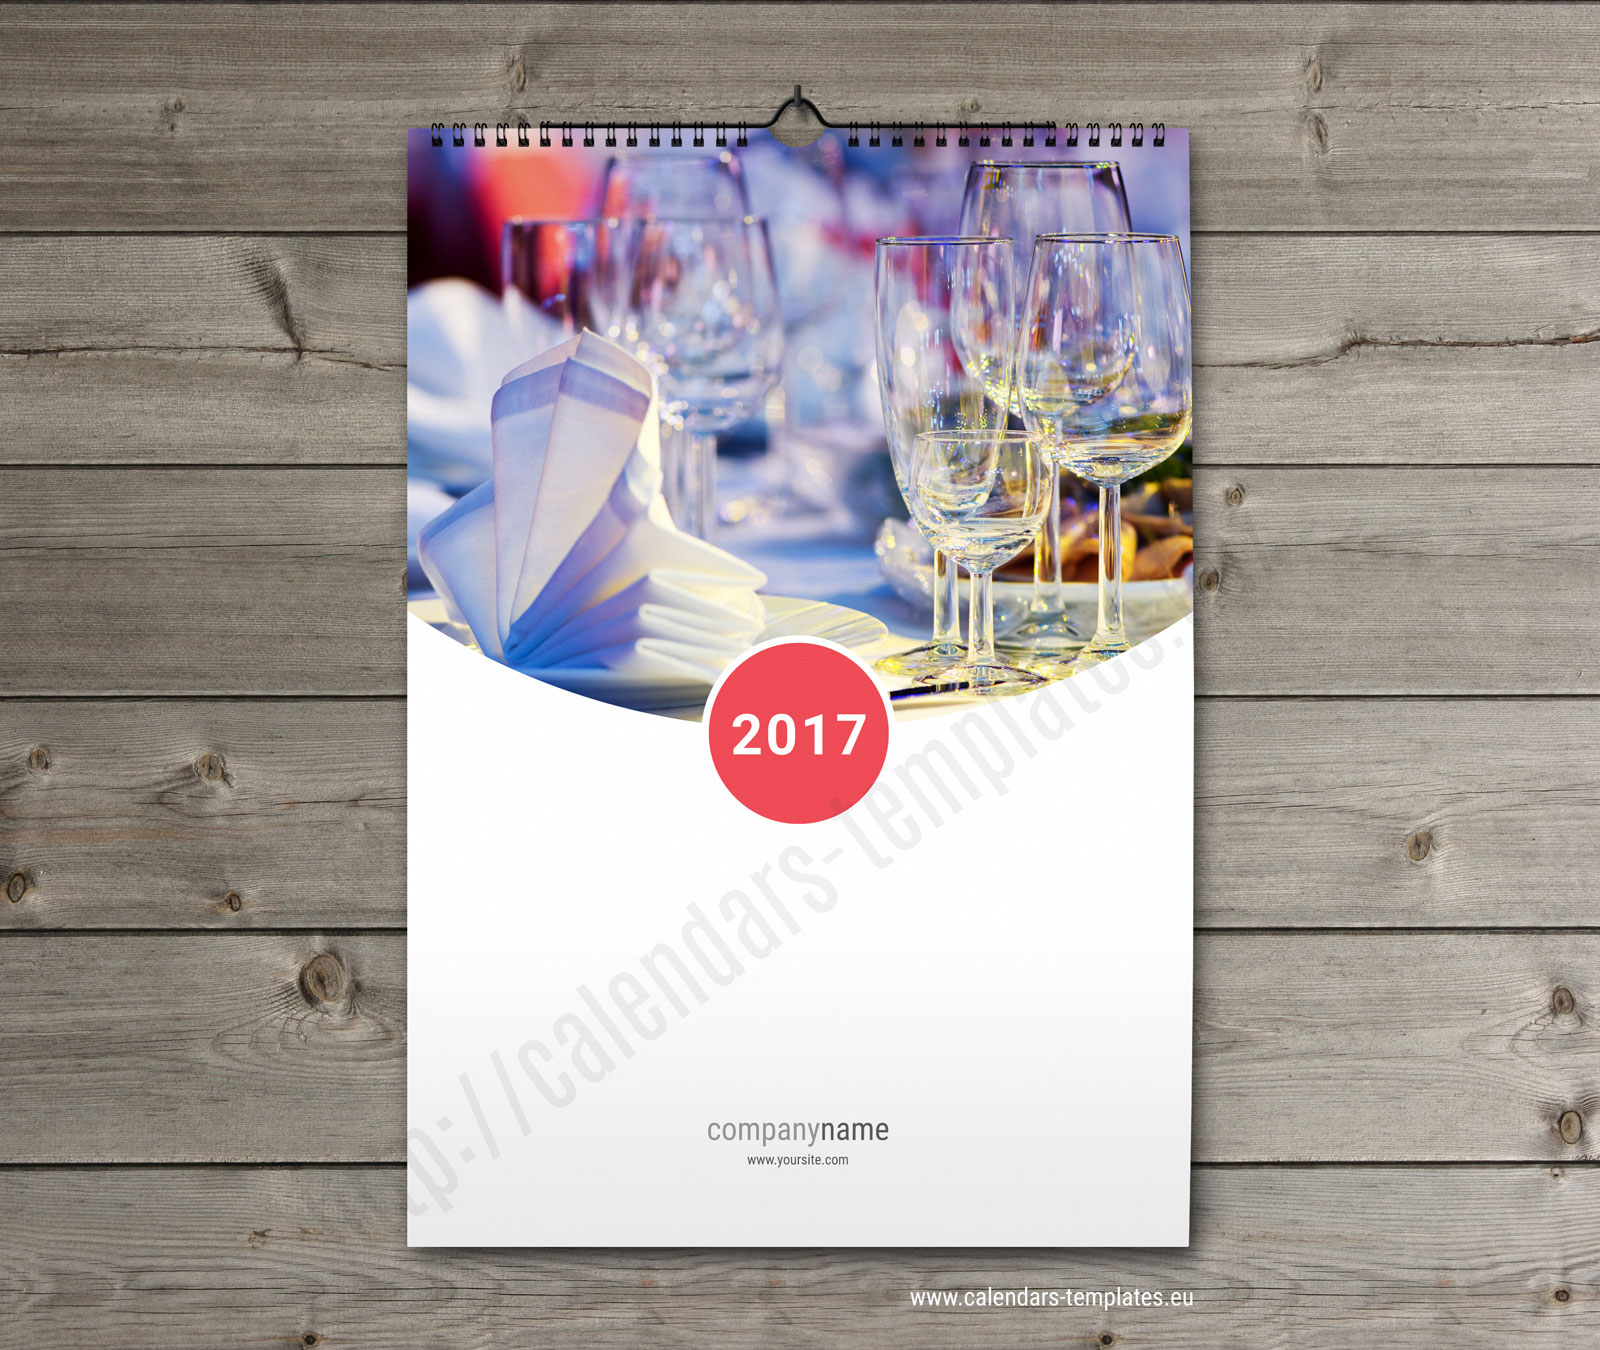 Wall calendar design template free download : Wall monthly printable multipage calendar template kw